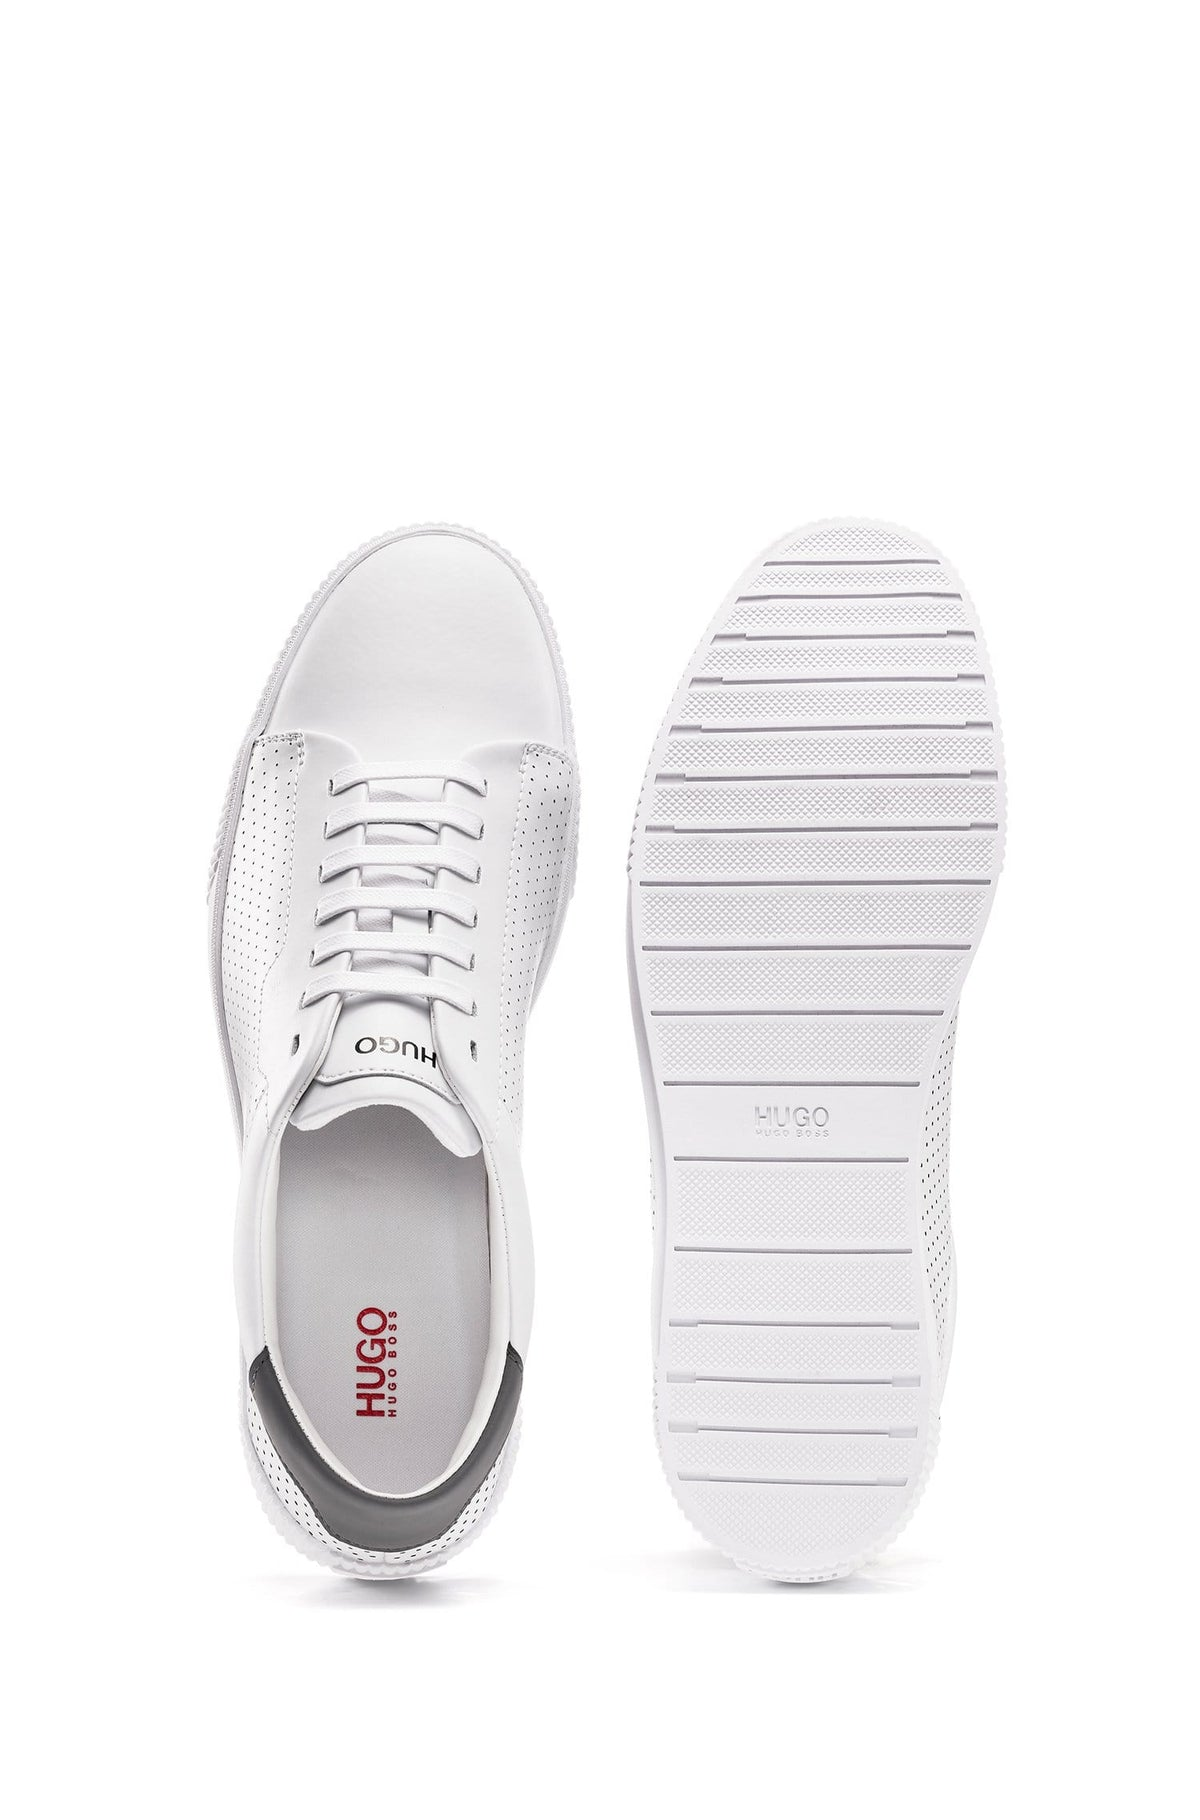 HUGO Lace-Up Trainers In Nappa Leather With Perforated Details